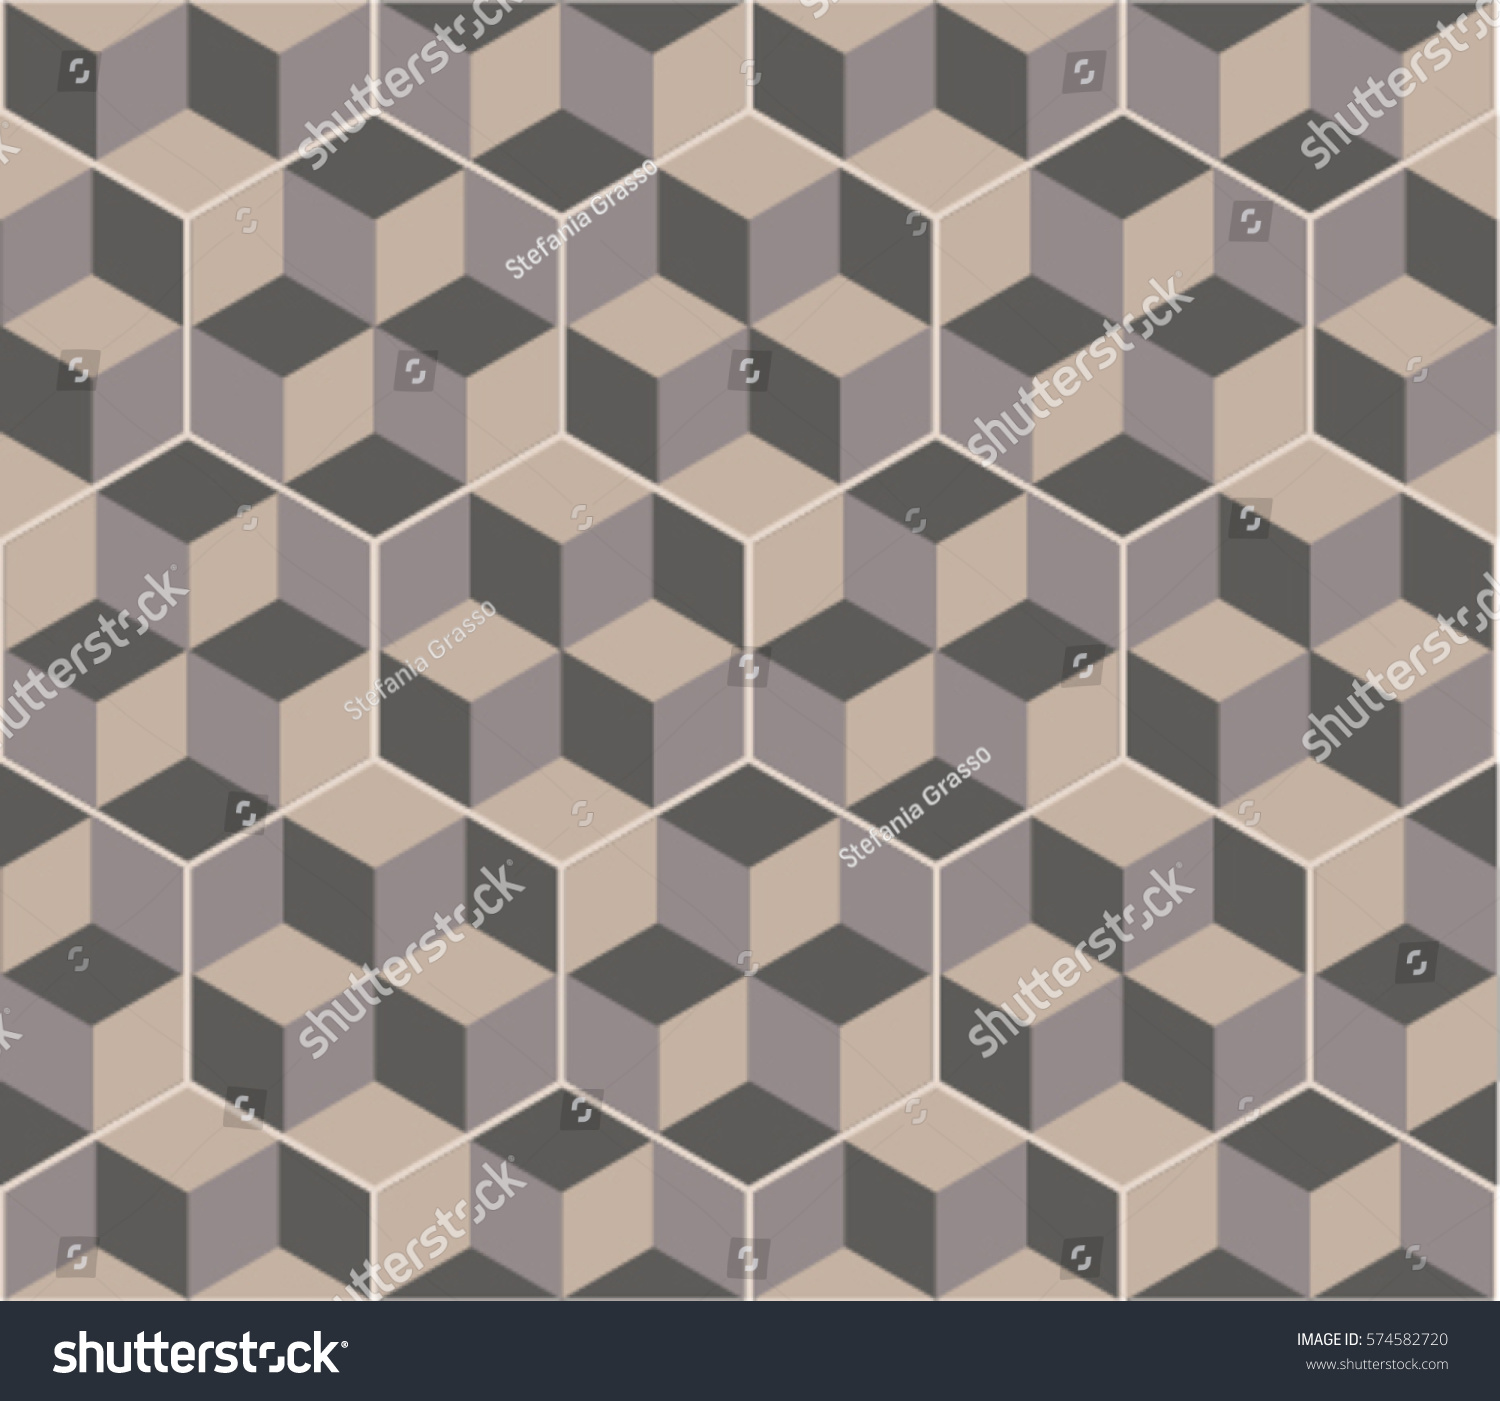 Hexagonal tiles optical illusion decor floor stock vector 2018 hexagonal tiles with optical illusion decor floor and wall texture vintage style pattern for ppazfo